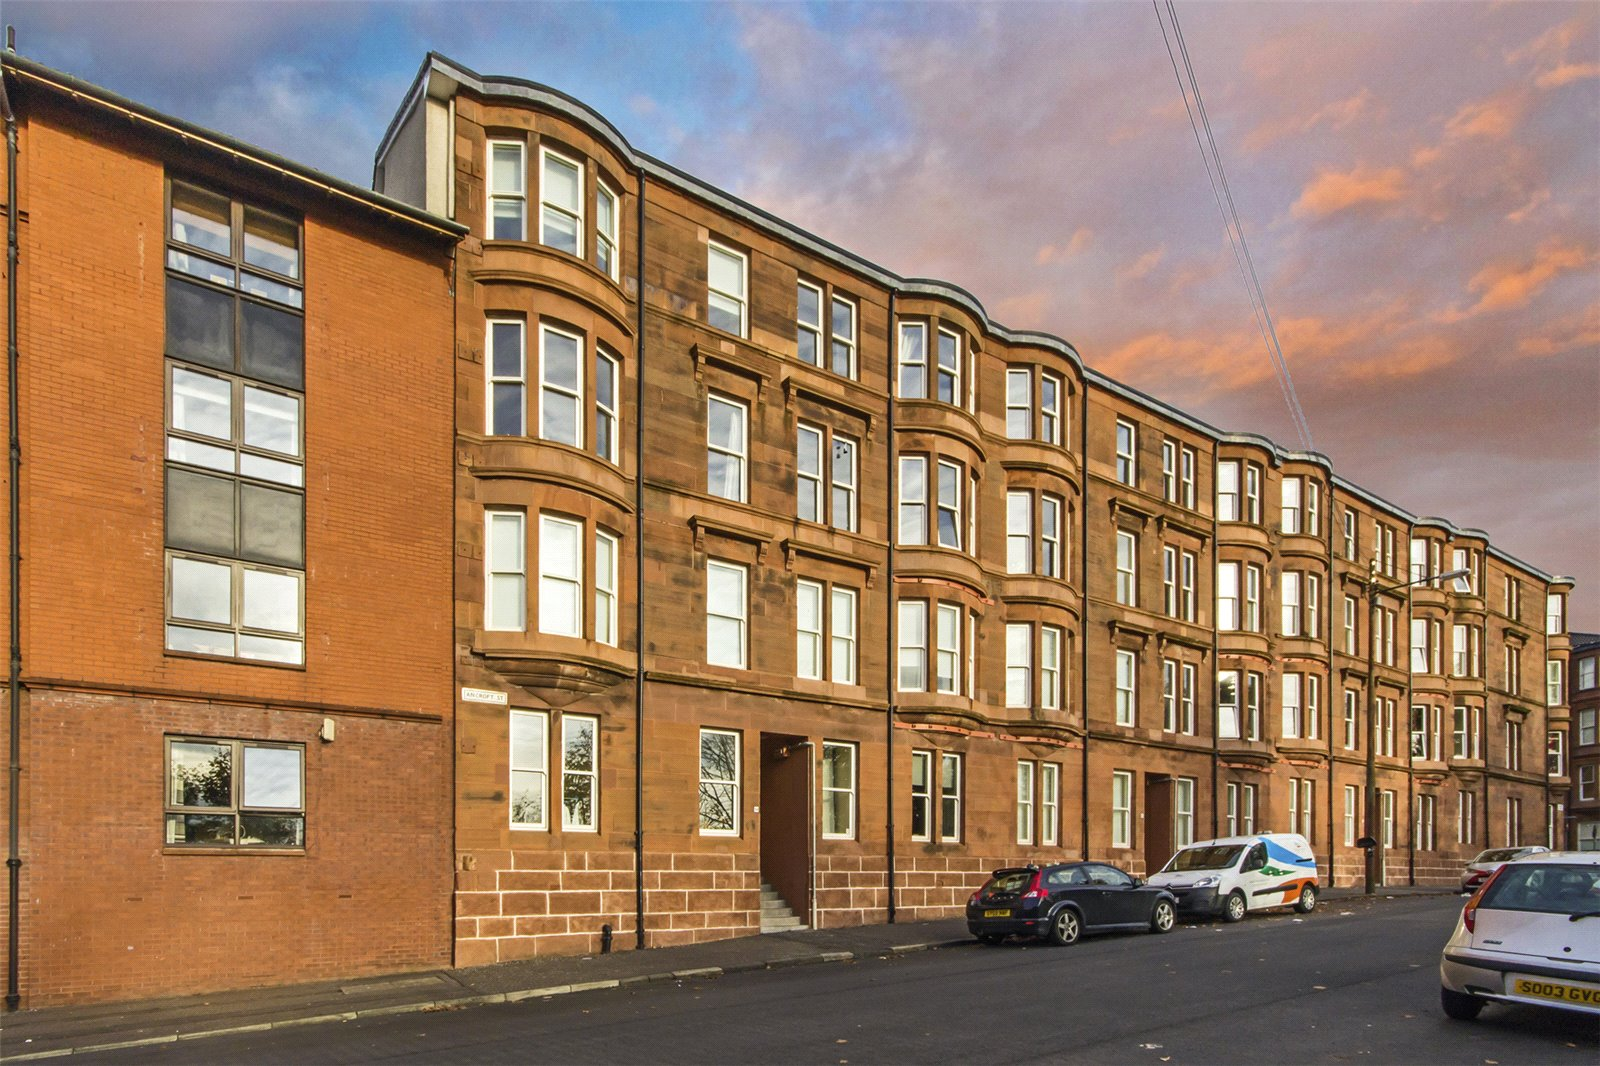 Glasgow Property of the Week: 3/1, 54 Ancroft Street